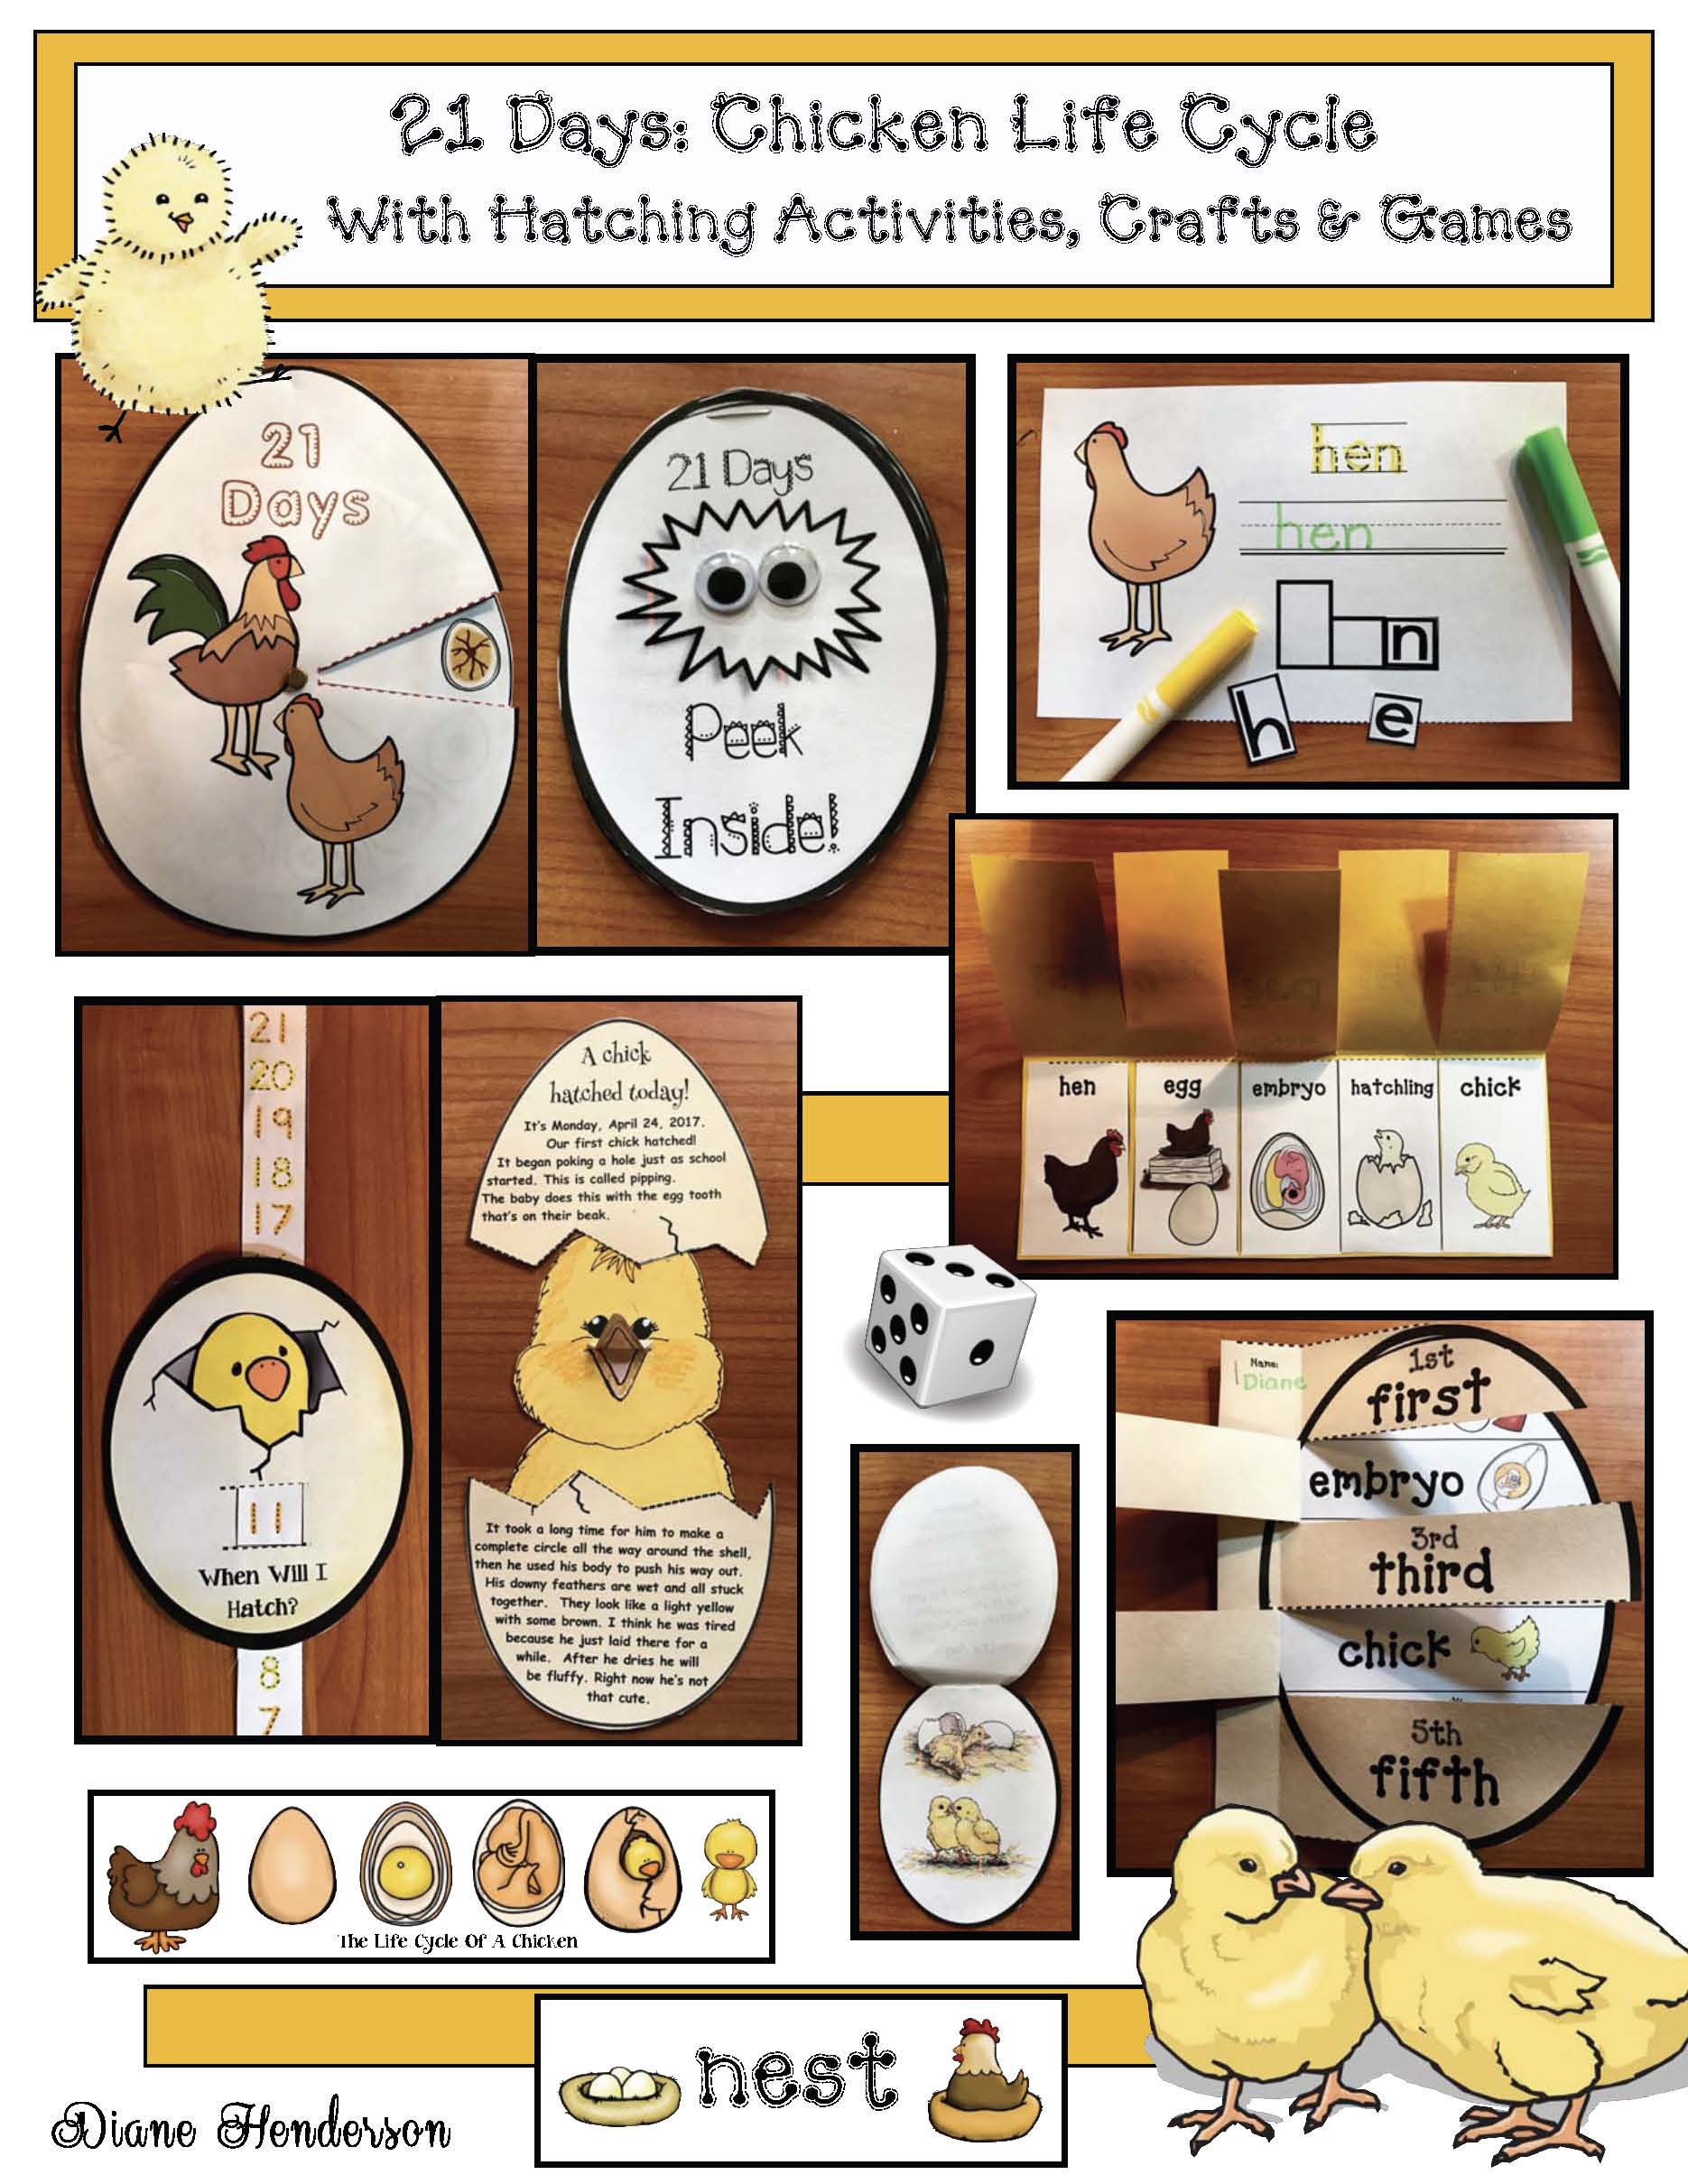 chicken life cycle activities, chicken crafts, chick hatching activities, chick hatching photographs, chicken games, chick games, life cycle of a chick games, life cycle of a chick crafts